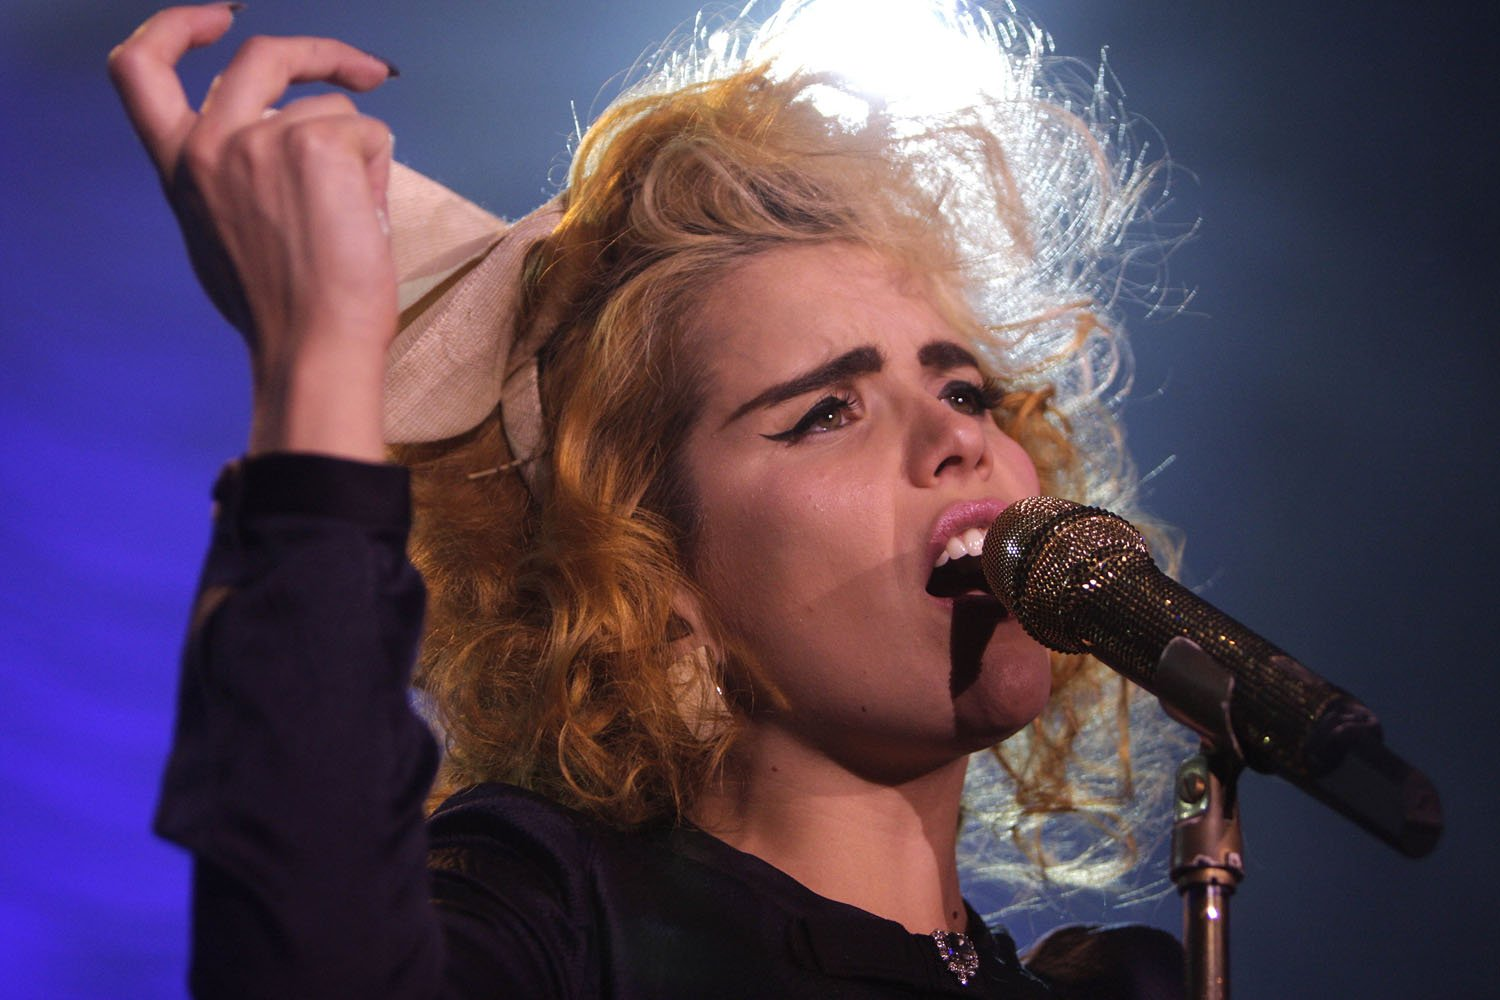 Paloma Faith @ Plymouth Pavilions 15th February 2013 - www.leapimages.co.uk